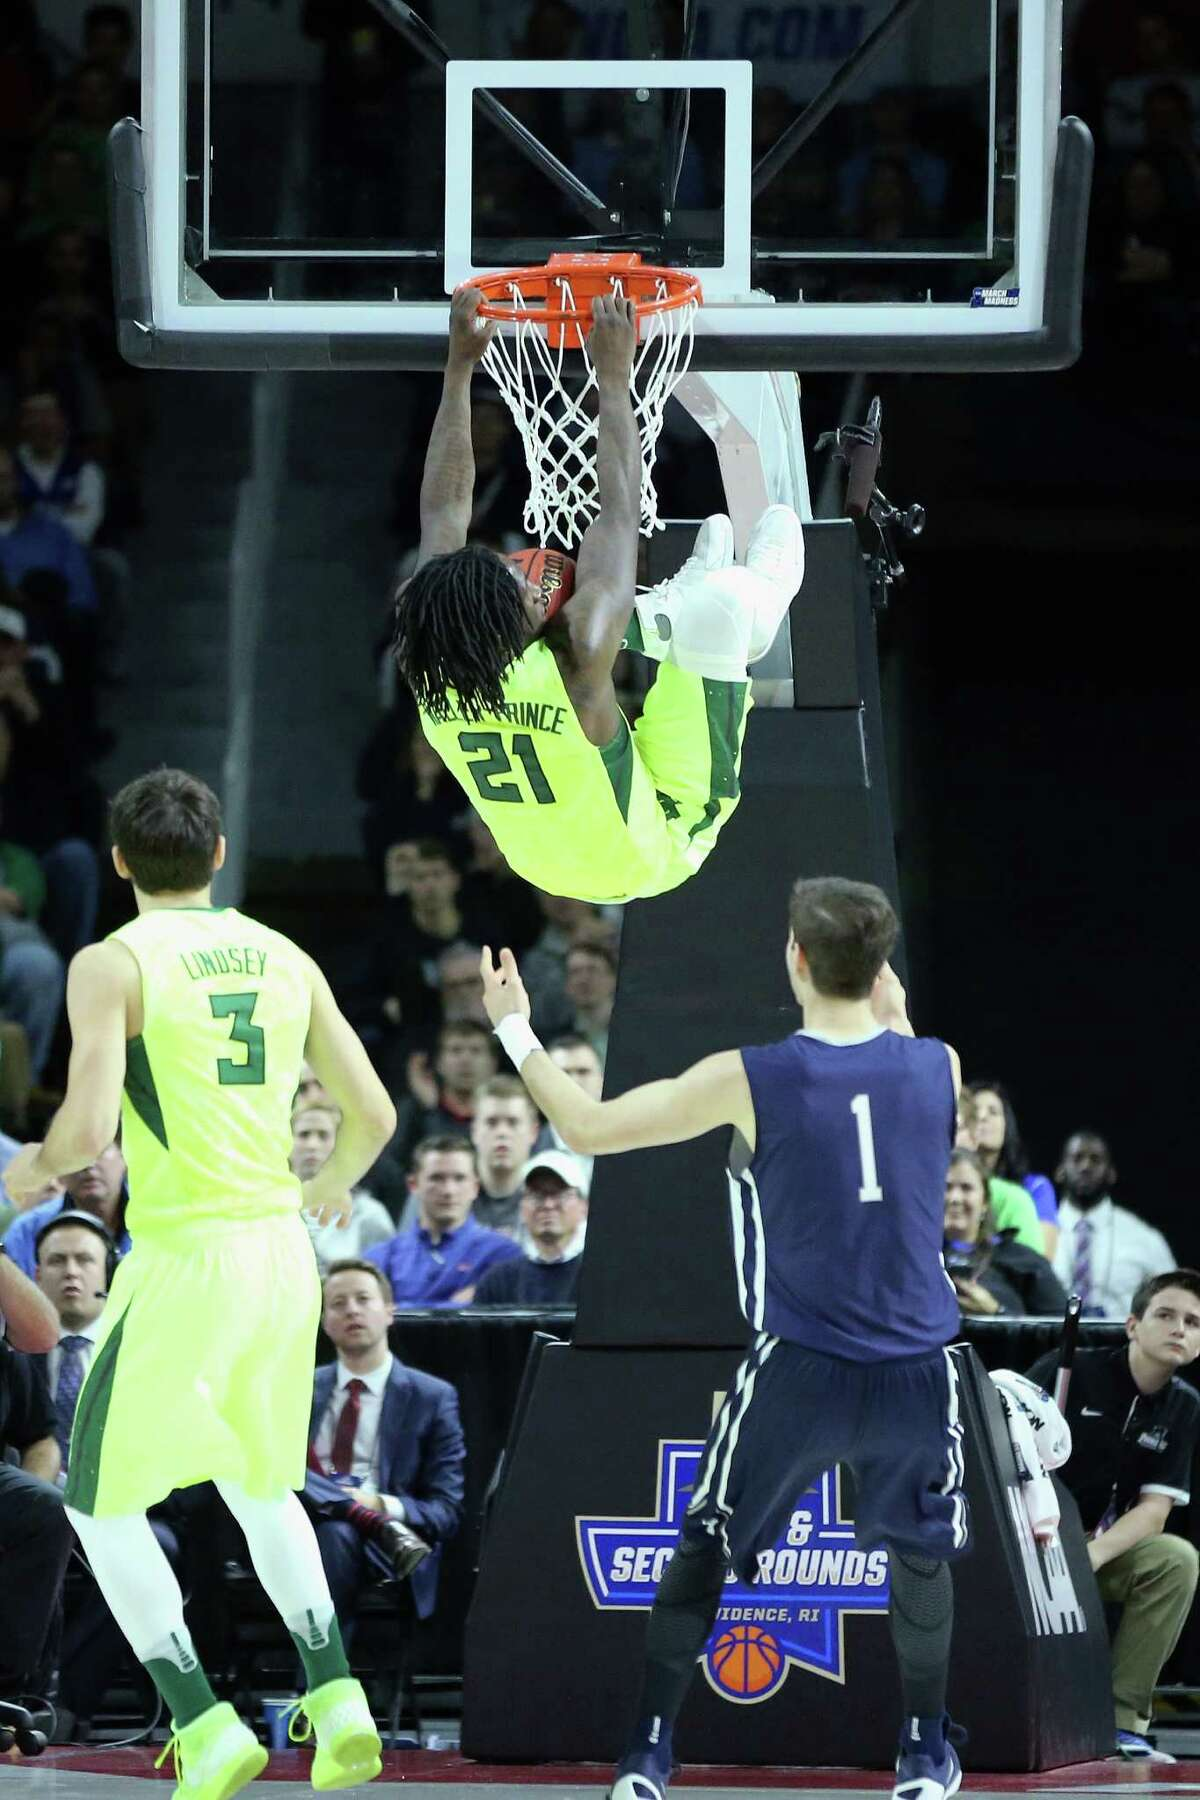 PROVIDENCE, RI - MARCH 17: Taurean Prince #21 of the Baylor Bears dunks the ball in the first half against the Yale Bulldogs during the first round of the 2016 NCAA Men's Basketball Tournament at Dunkin' Donuts Center on March 17, 2016 in Providence, Rhode Island.